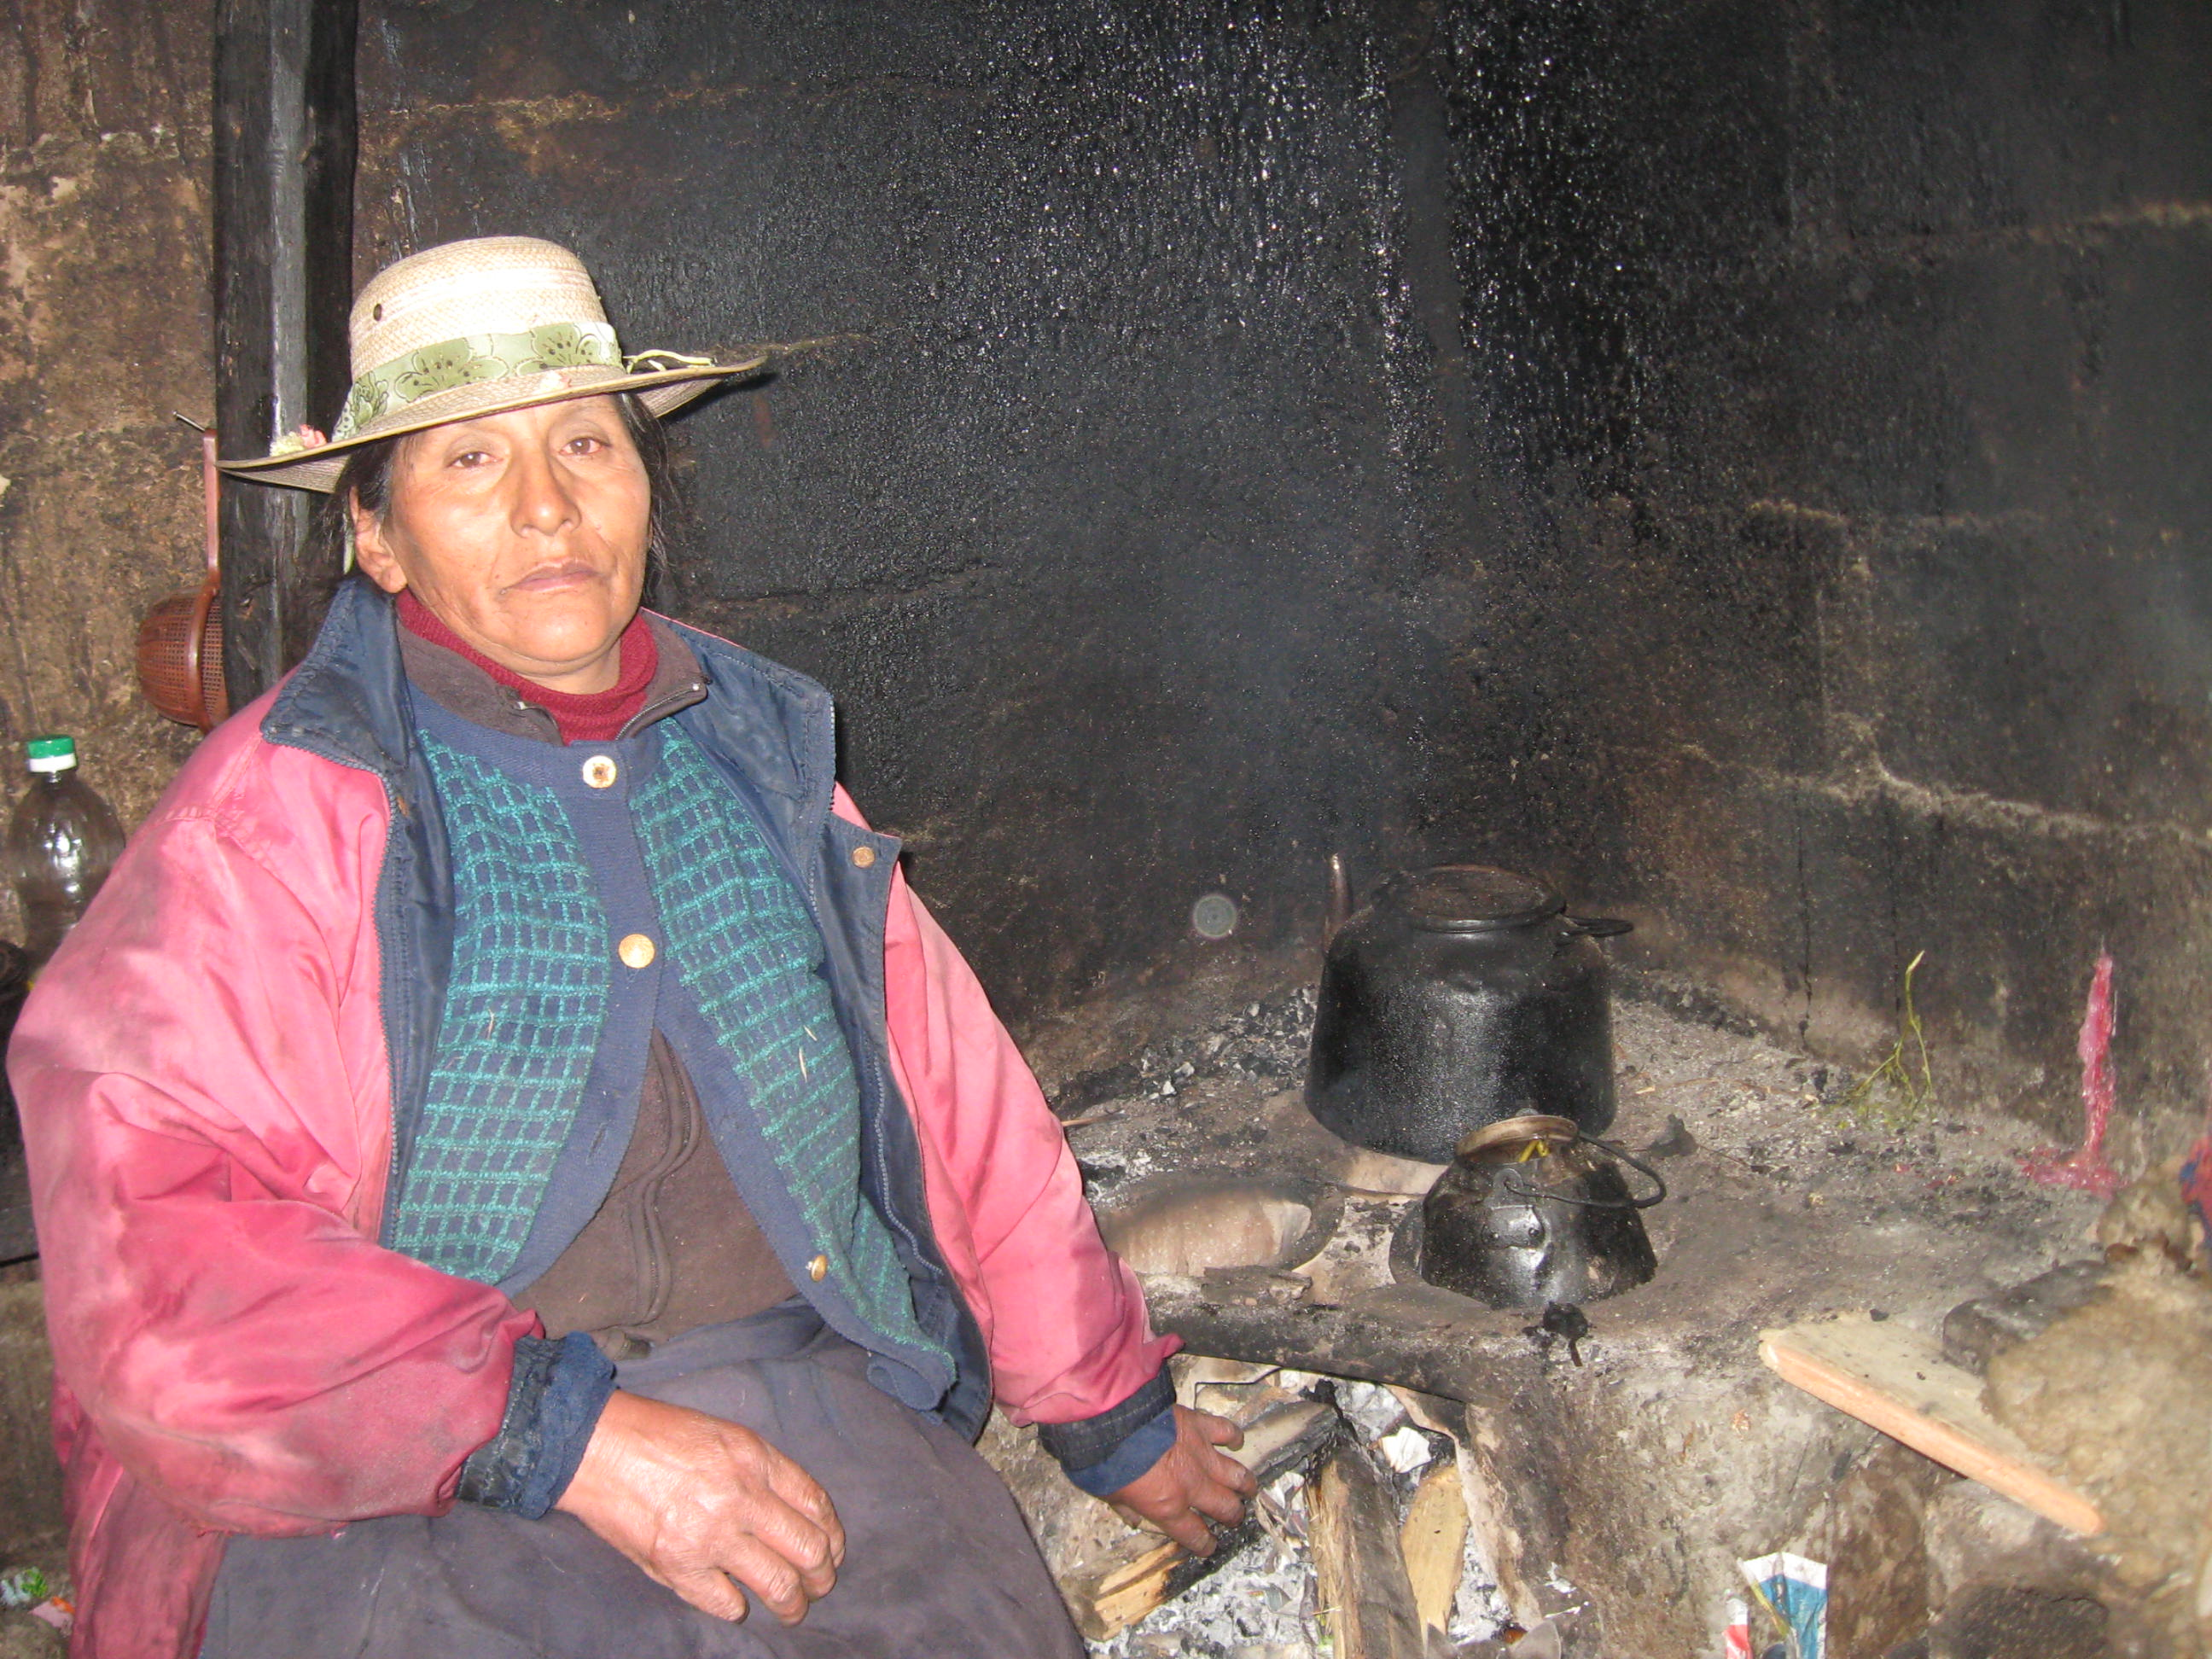 Susanna, a resident at the Abra Malaga pass, located at over 4200m above sea level, next to her existing stove. Note the black stain on the wall behind the stove where the smoke currently escapes.